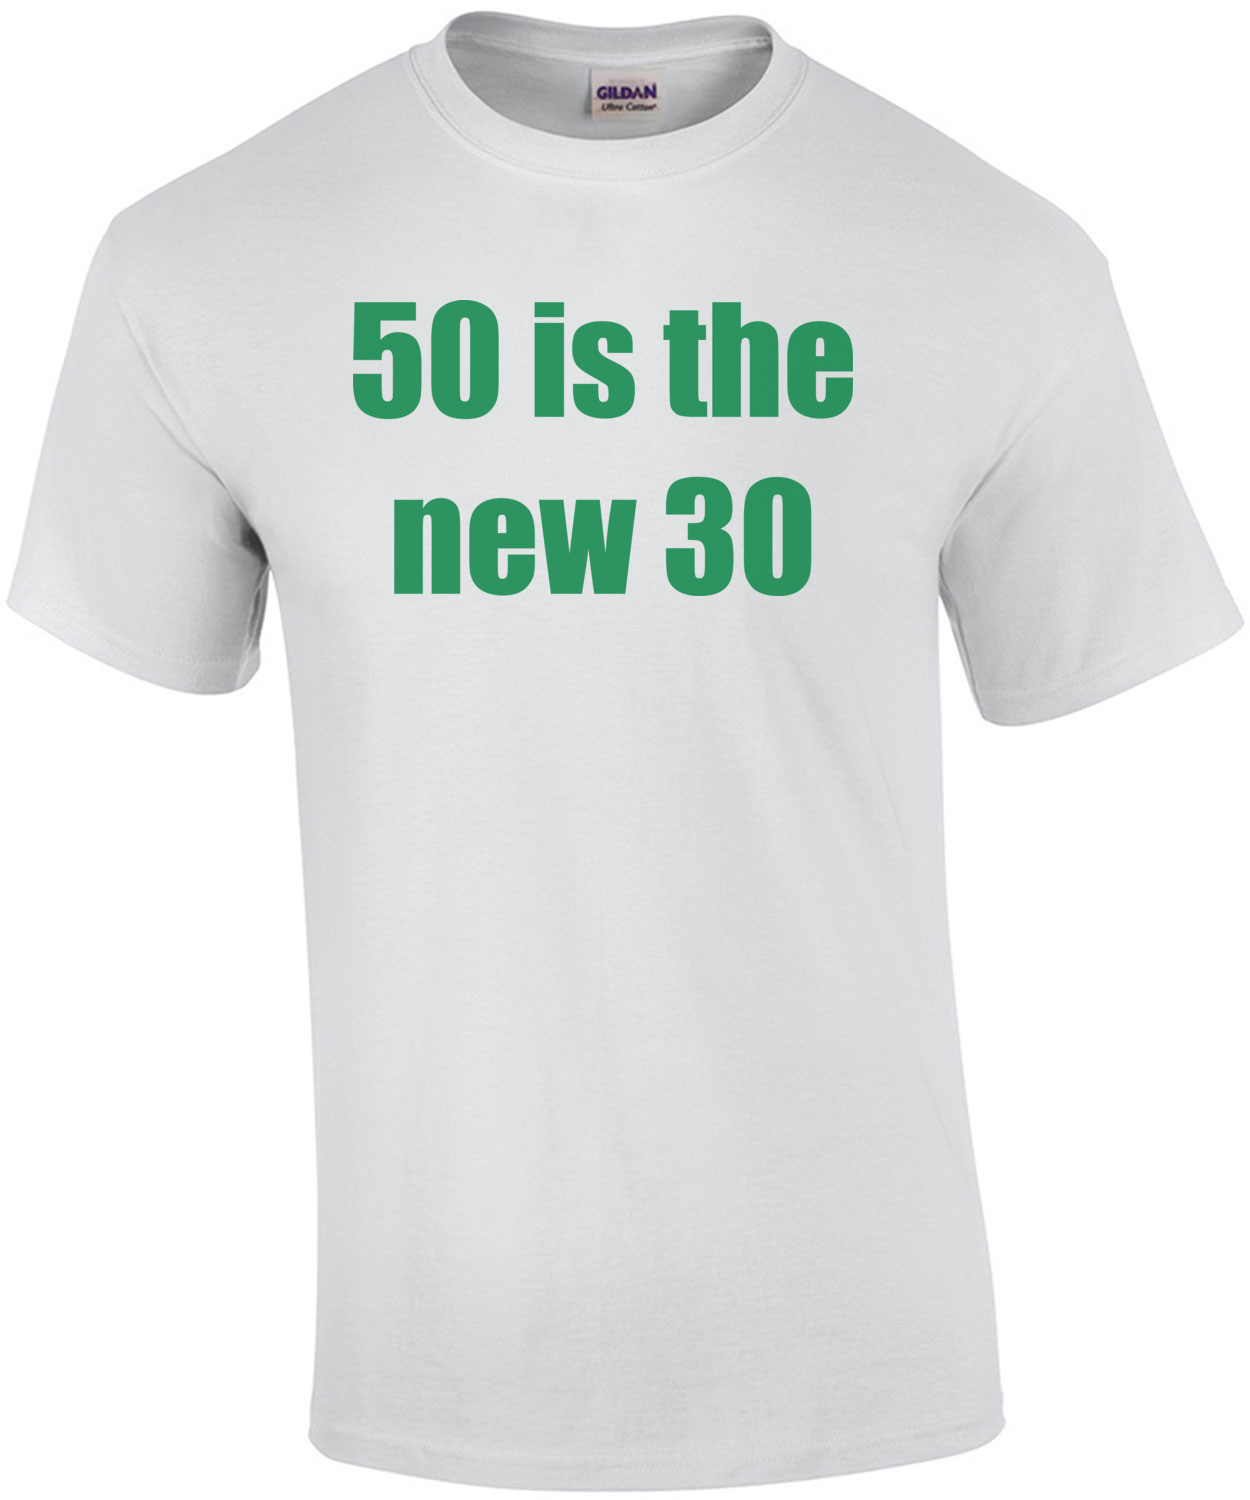 50 is the new 30 - Fifty 50 Birthday T-Shirt